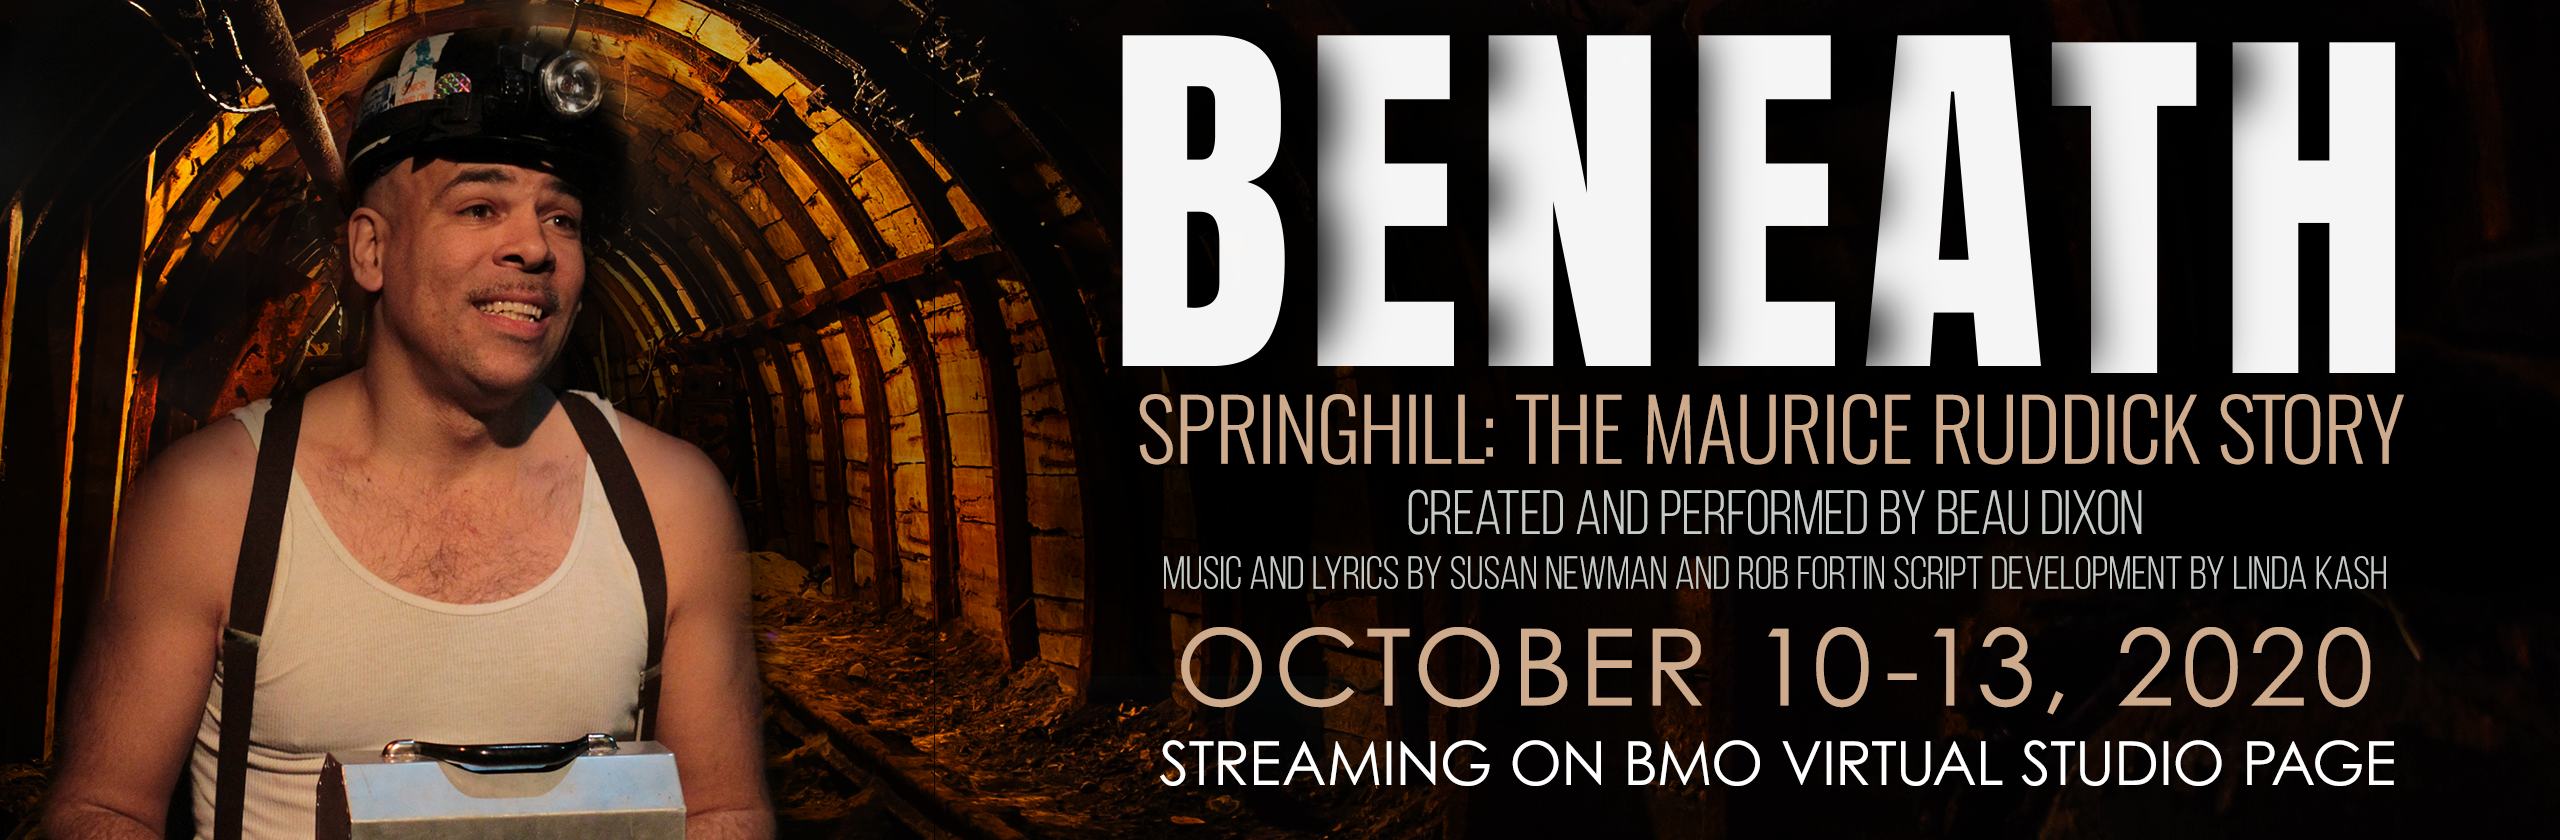 BENEATH SPRINGHILL: THE MAURICE RUDDICK STORY